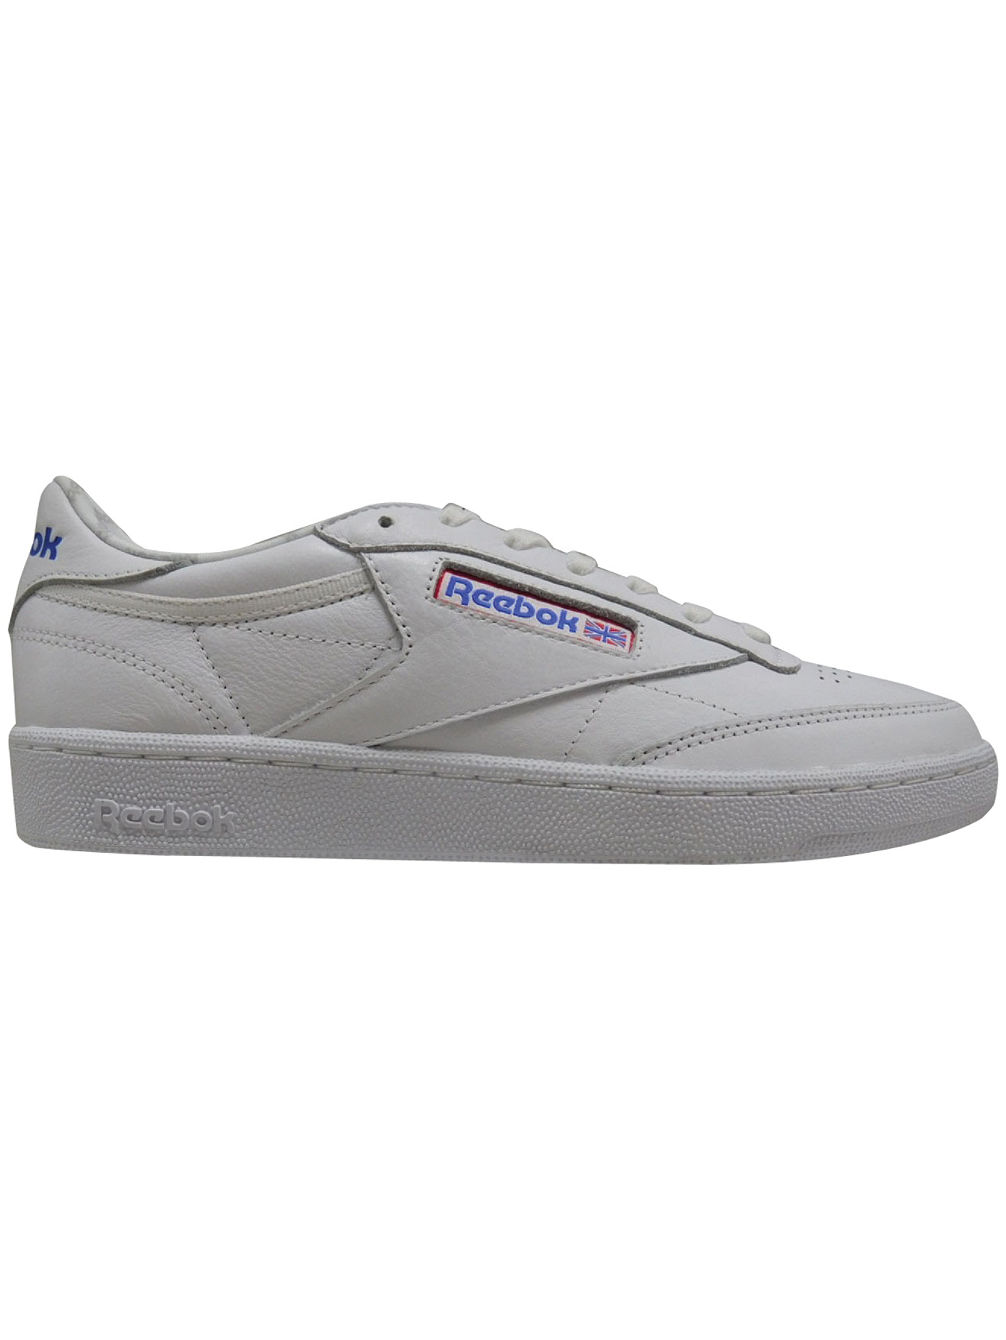 7f9a85c5644ee Buy Reebok Club C85 SO Sneakers online at Blue Tomato